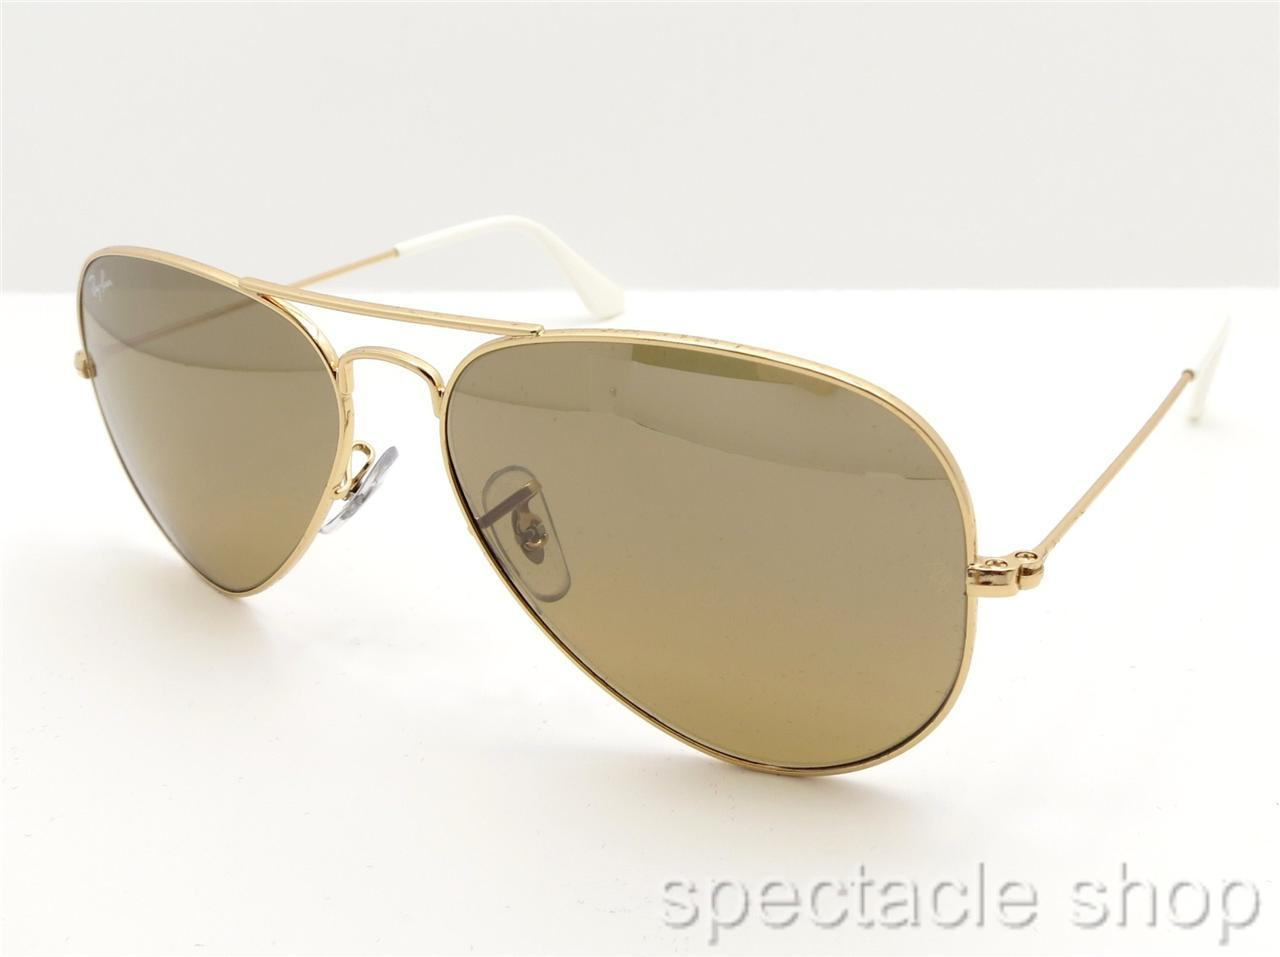 78904c8ccdef5 Ray Ban Rb 3025 58 Gold And Brown Radiant